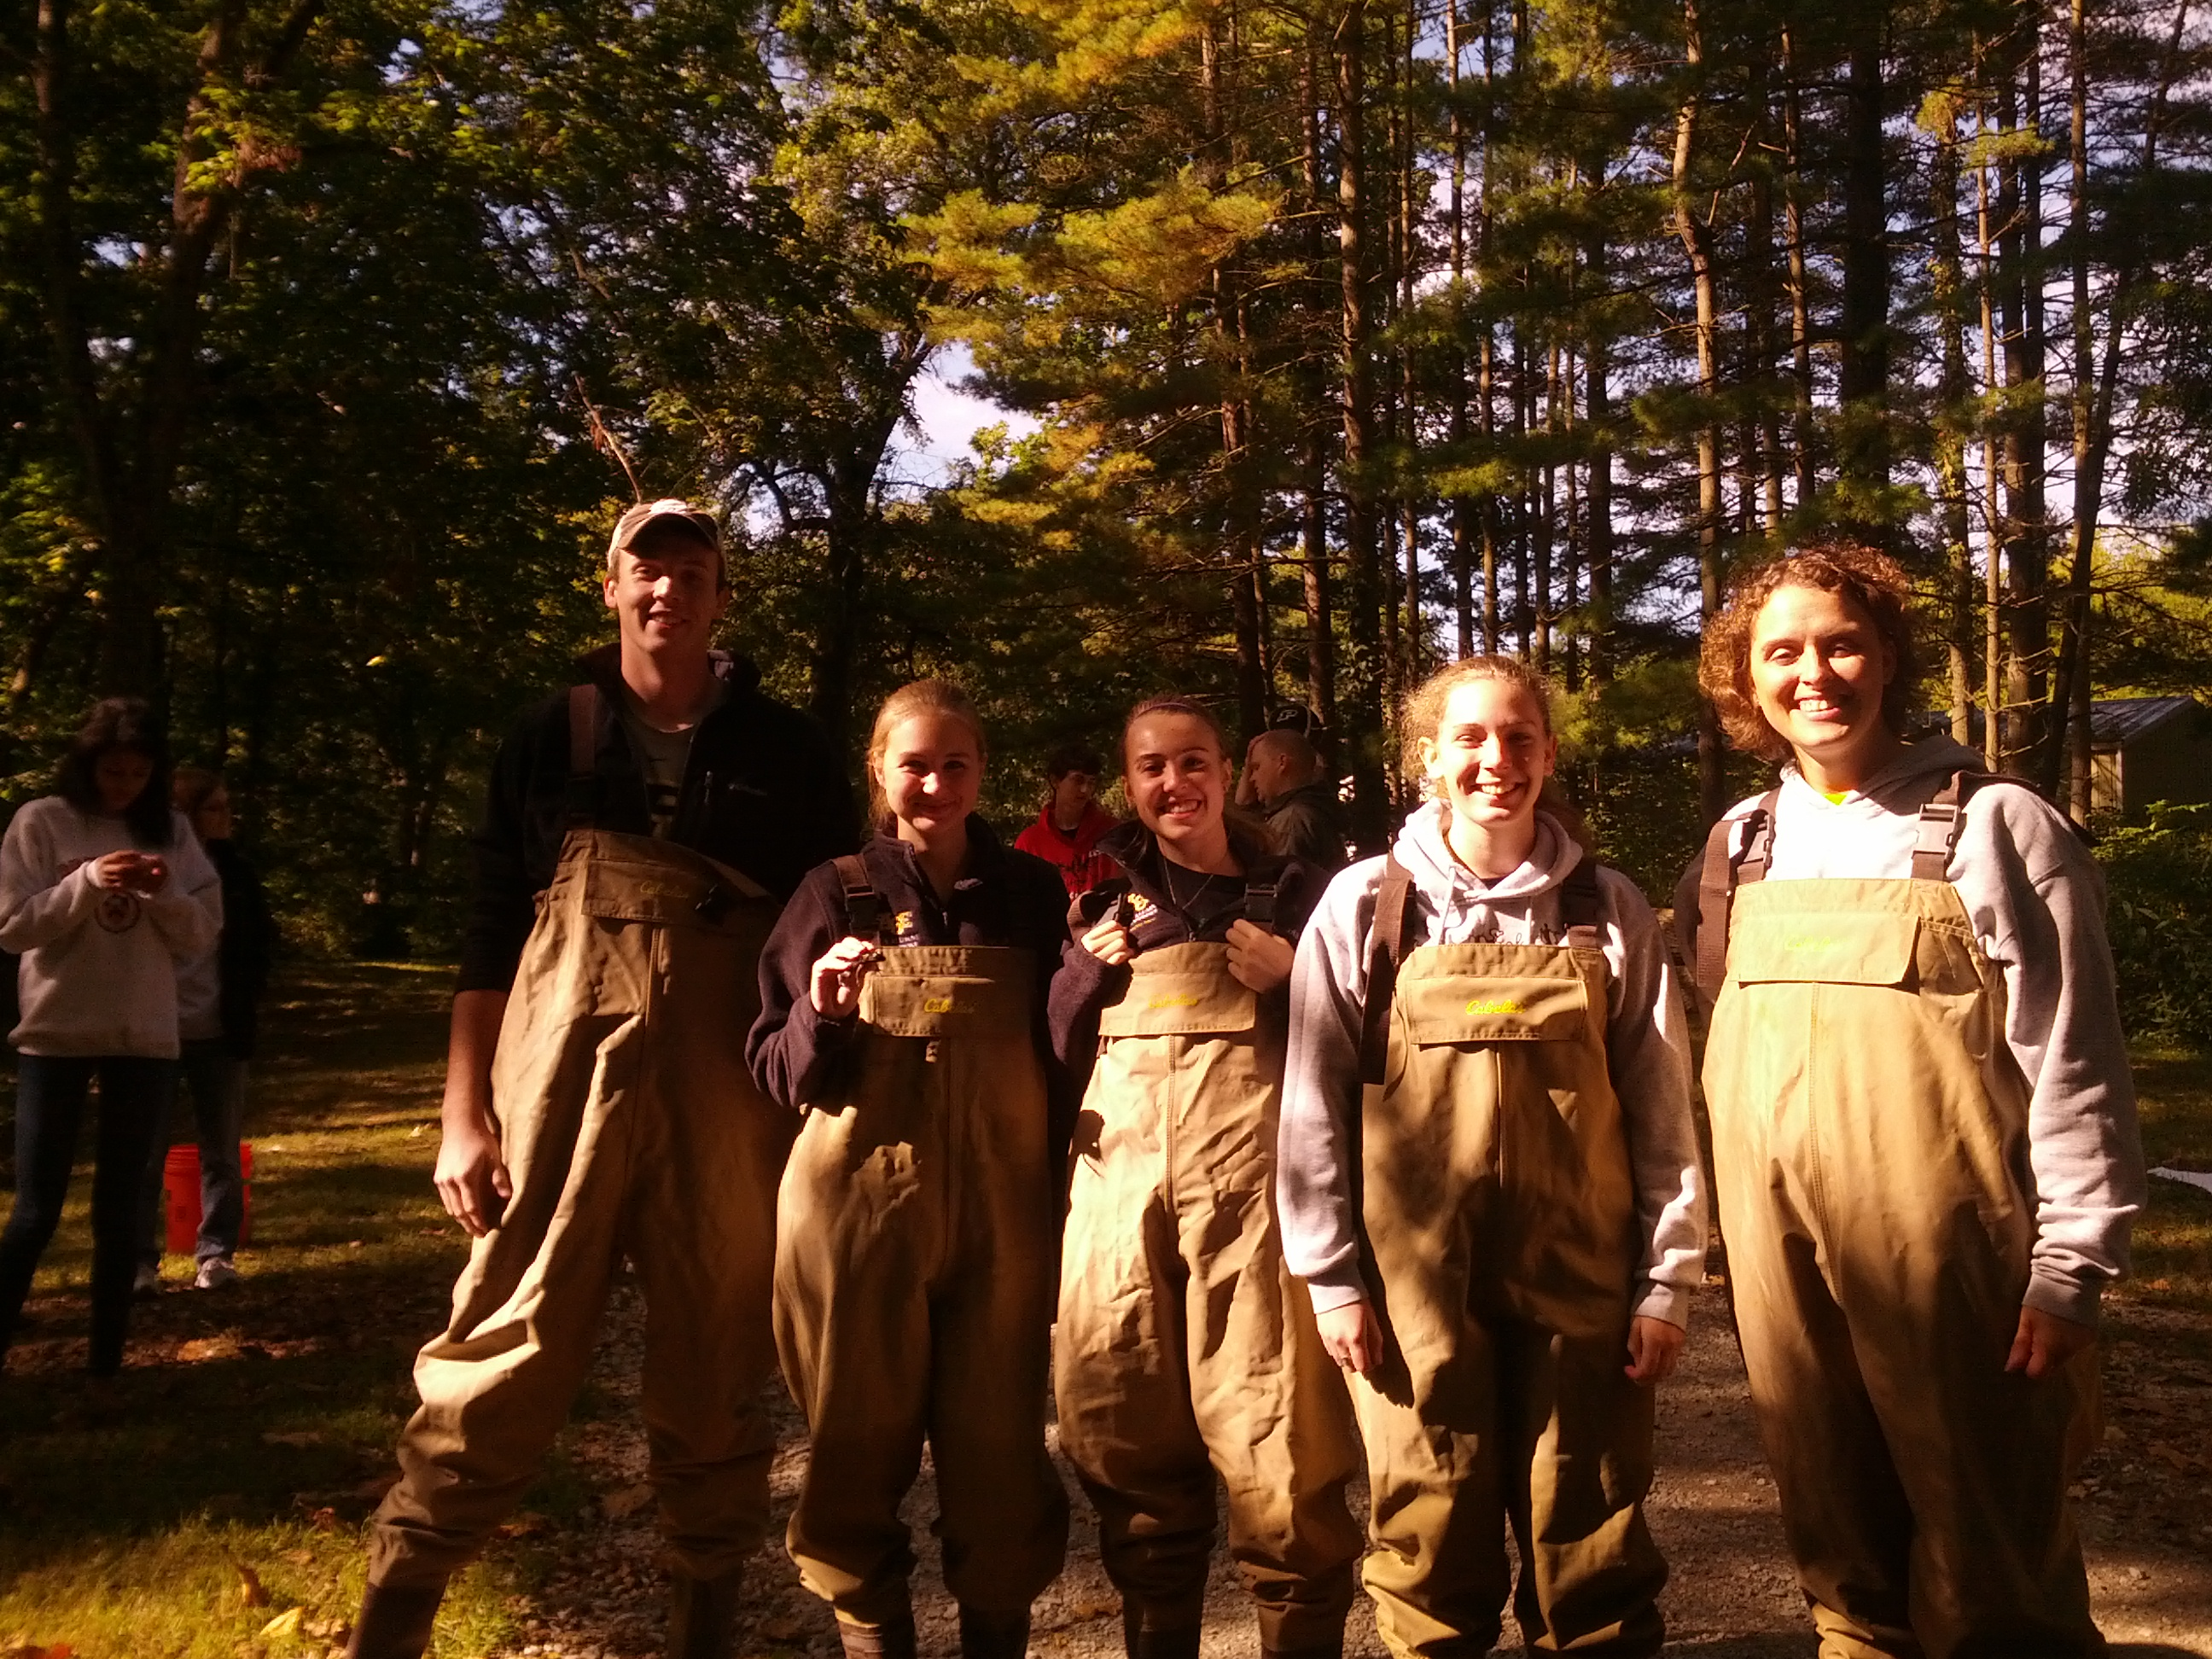 Students and advisor in waders.